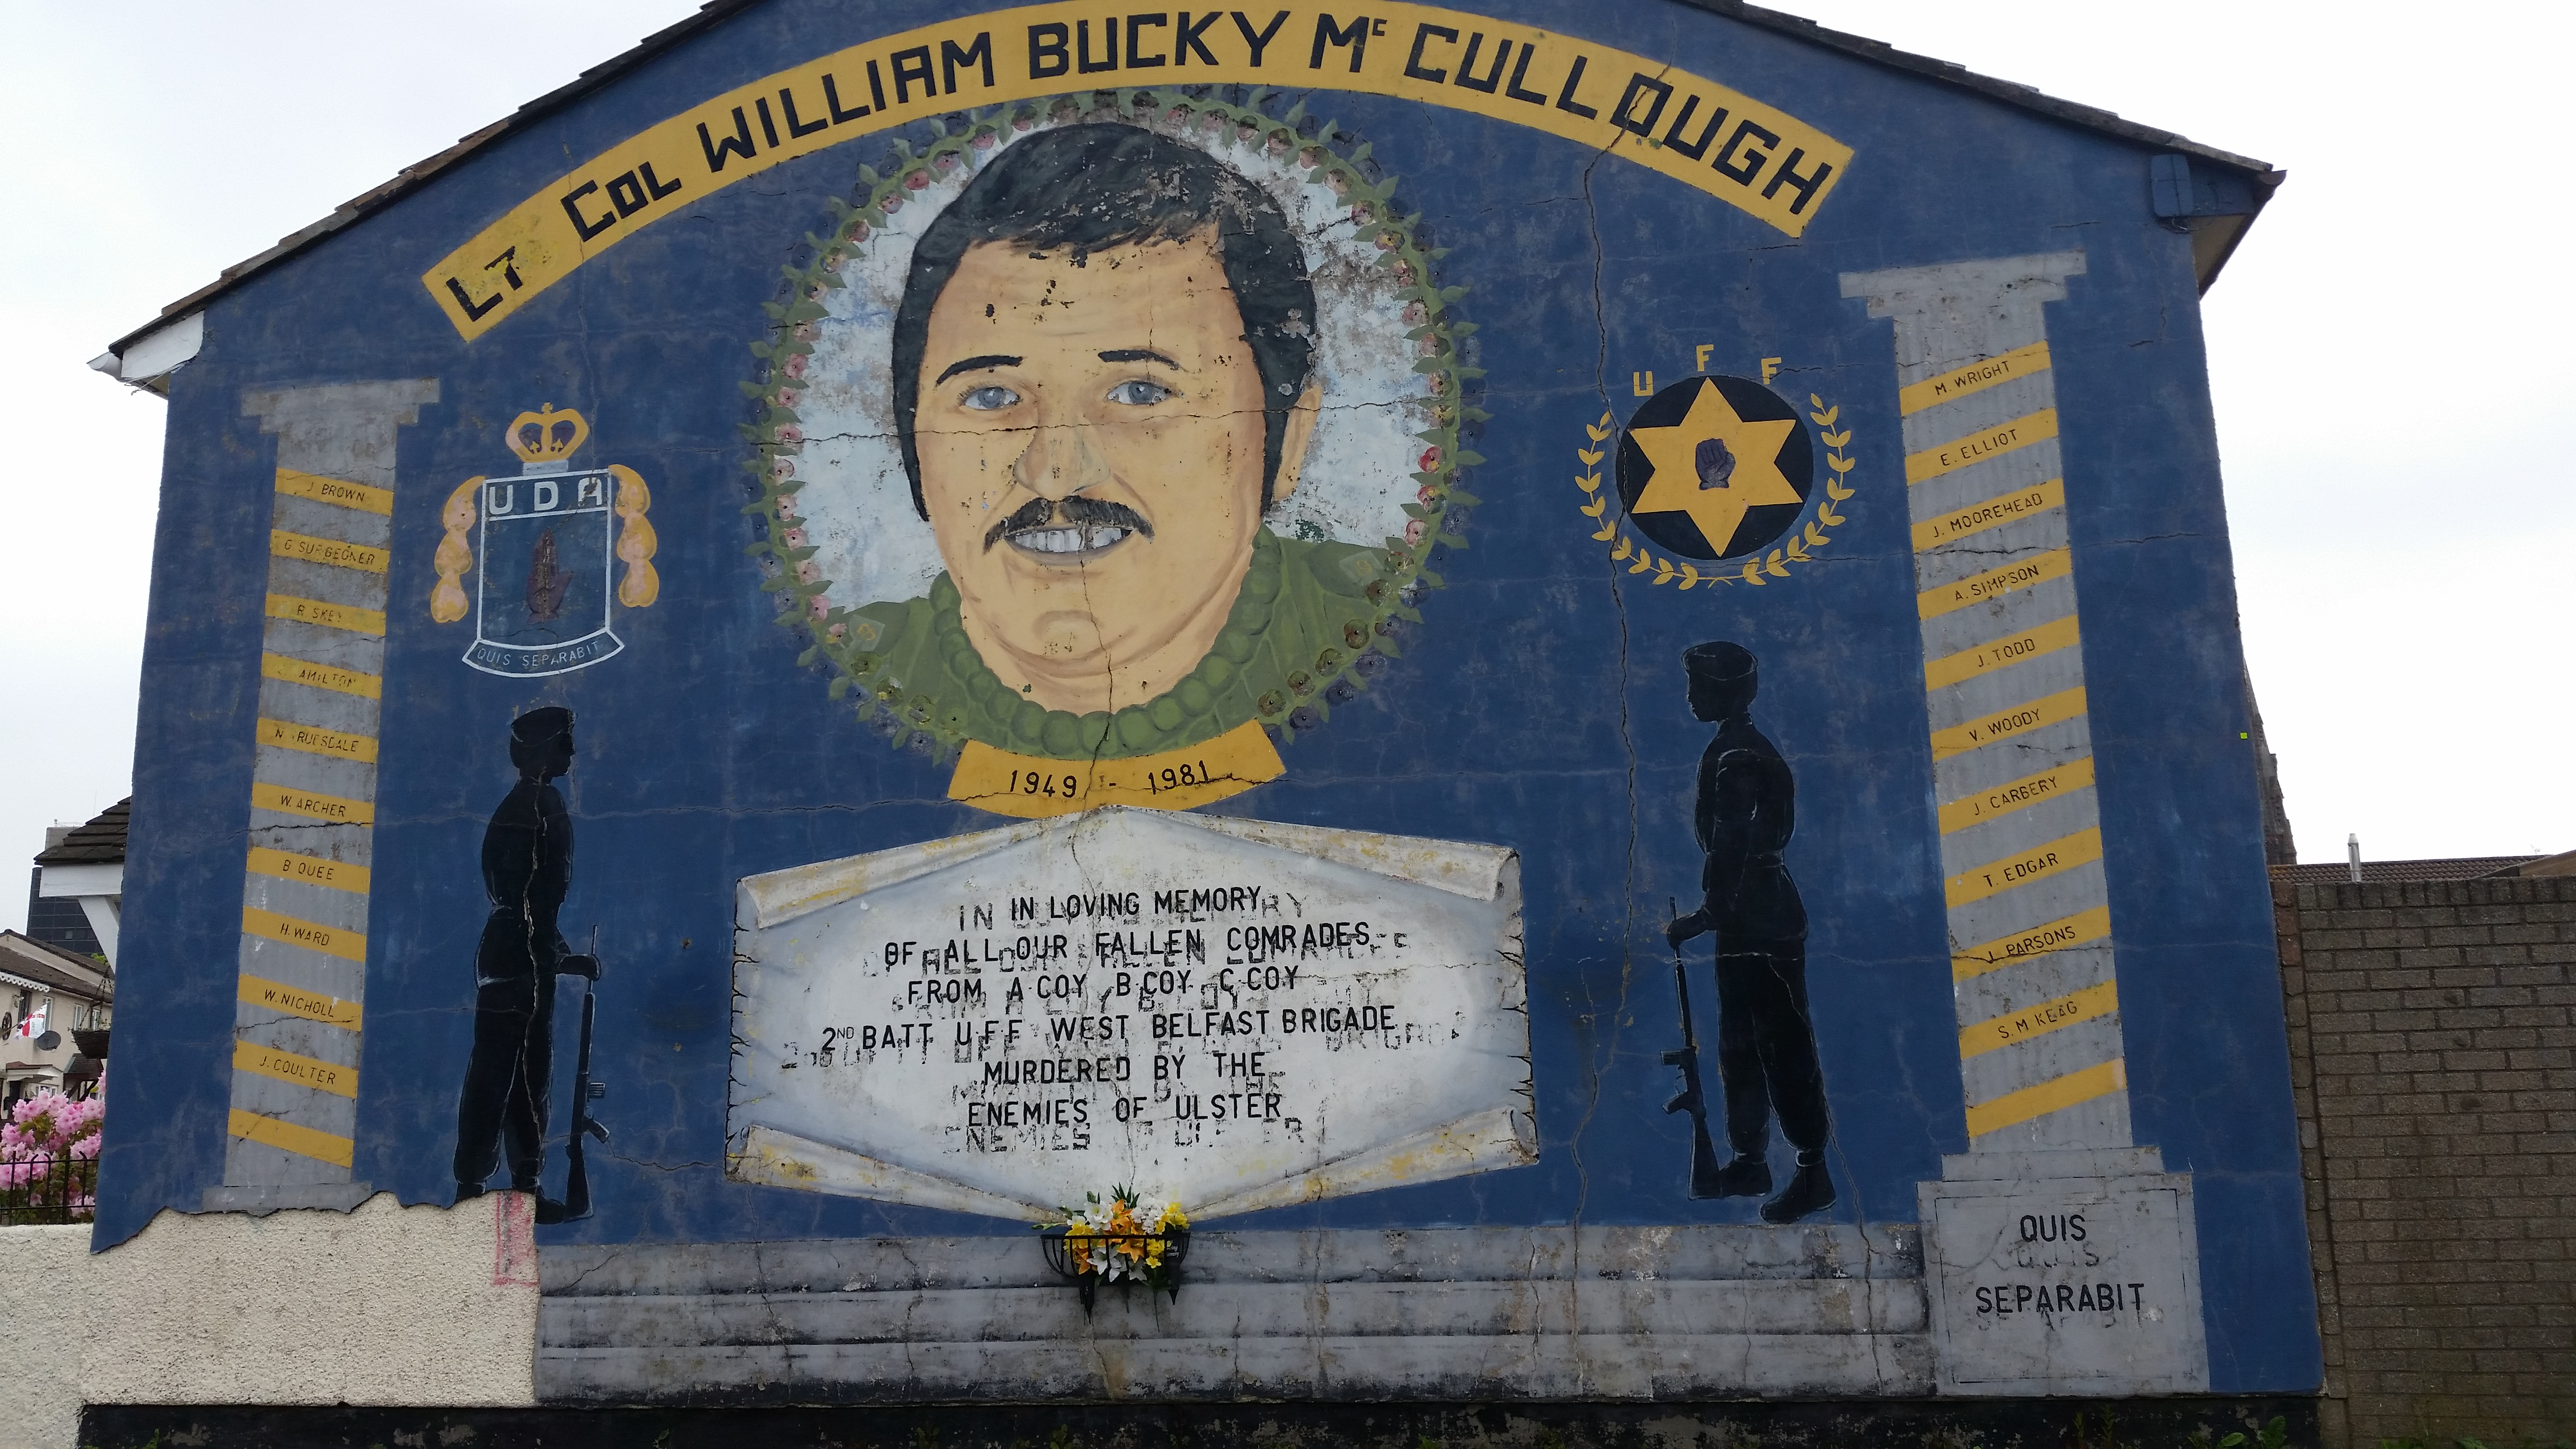 A Protestant/Loyalist Mural